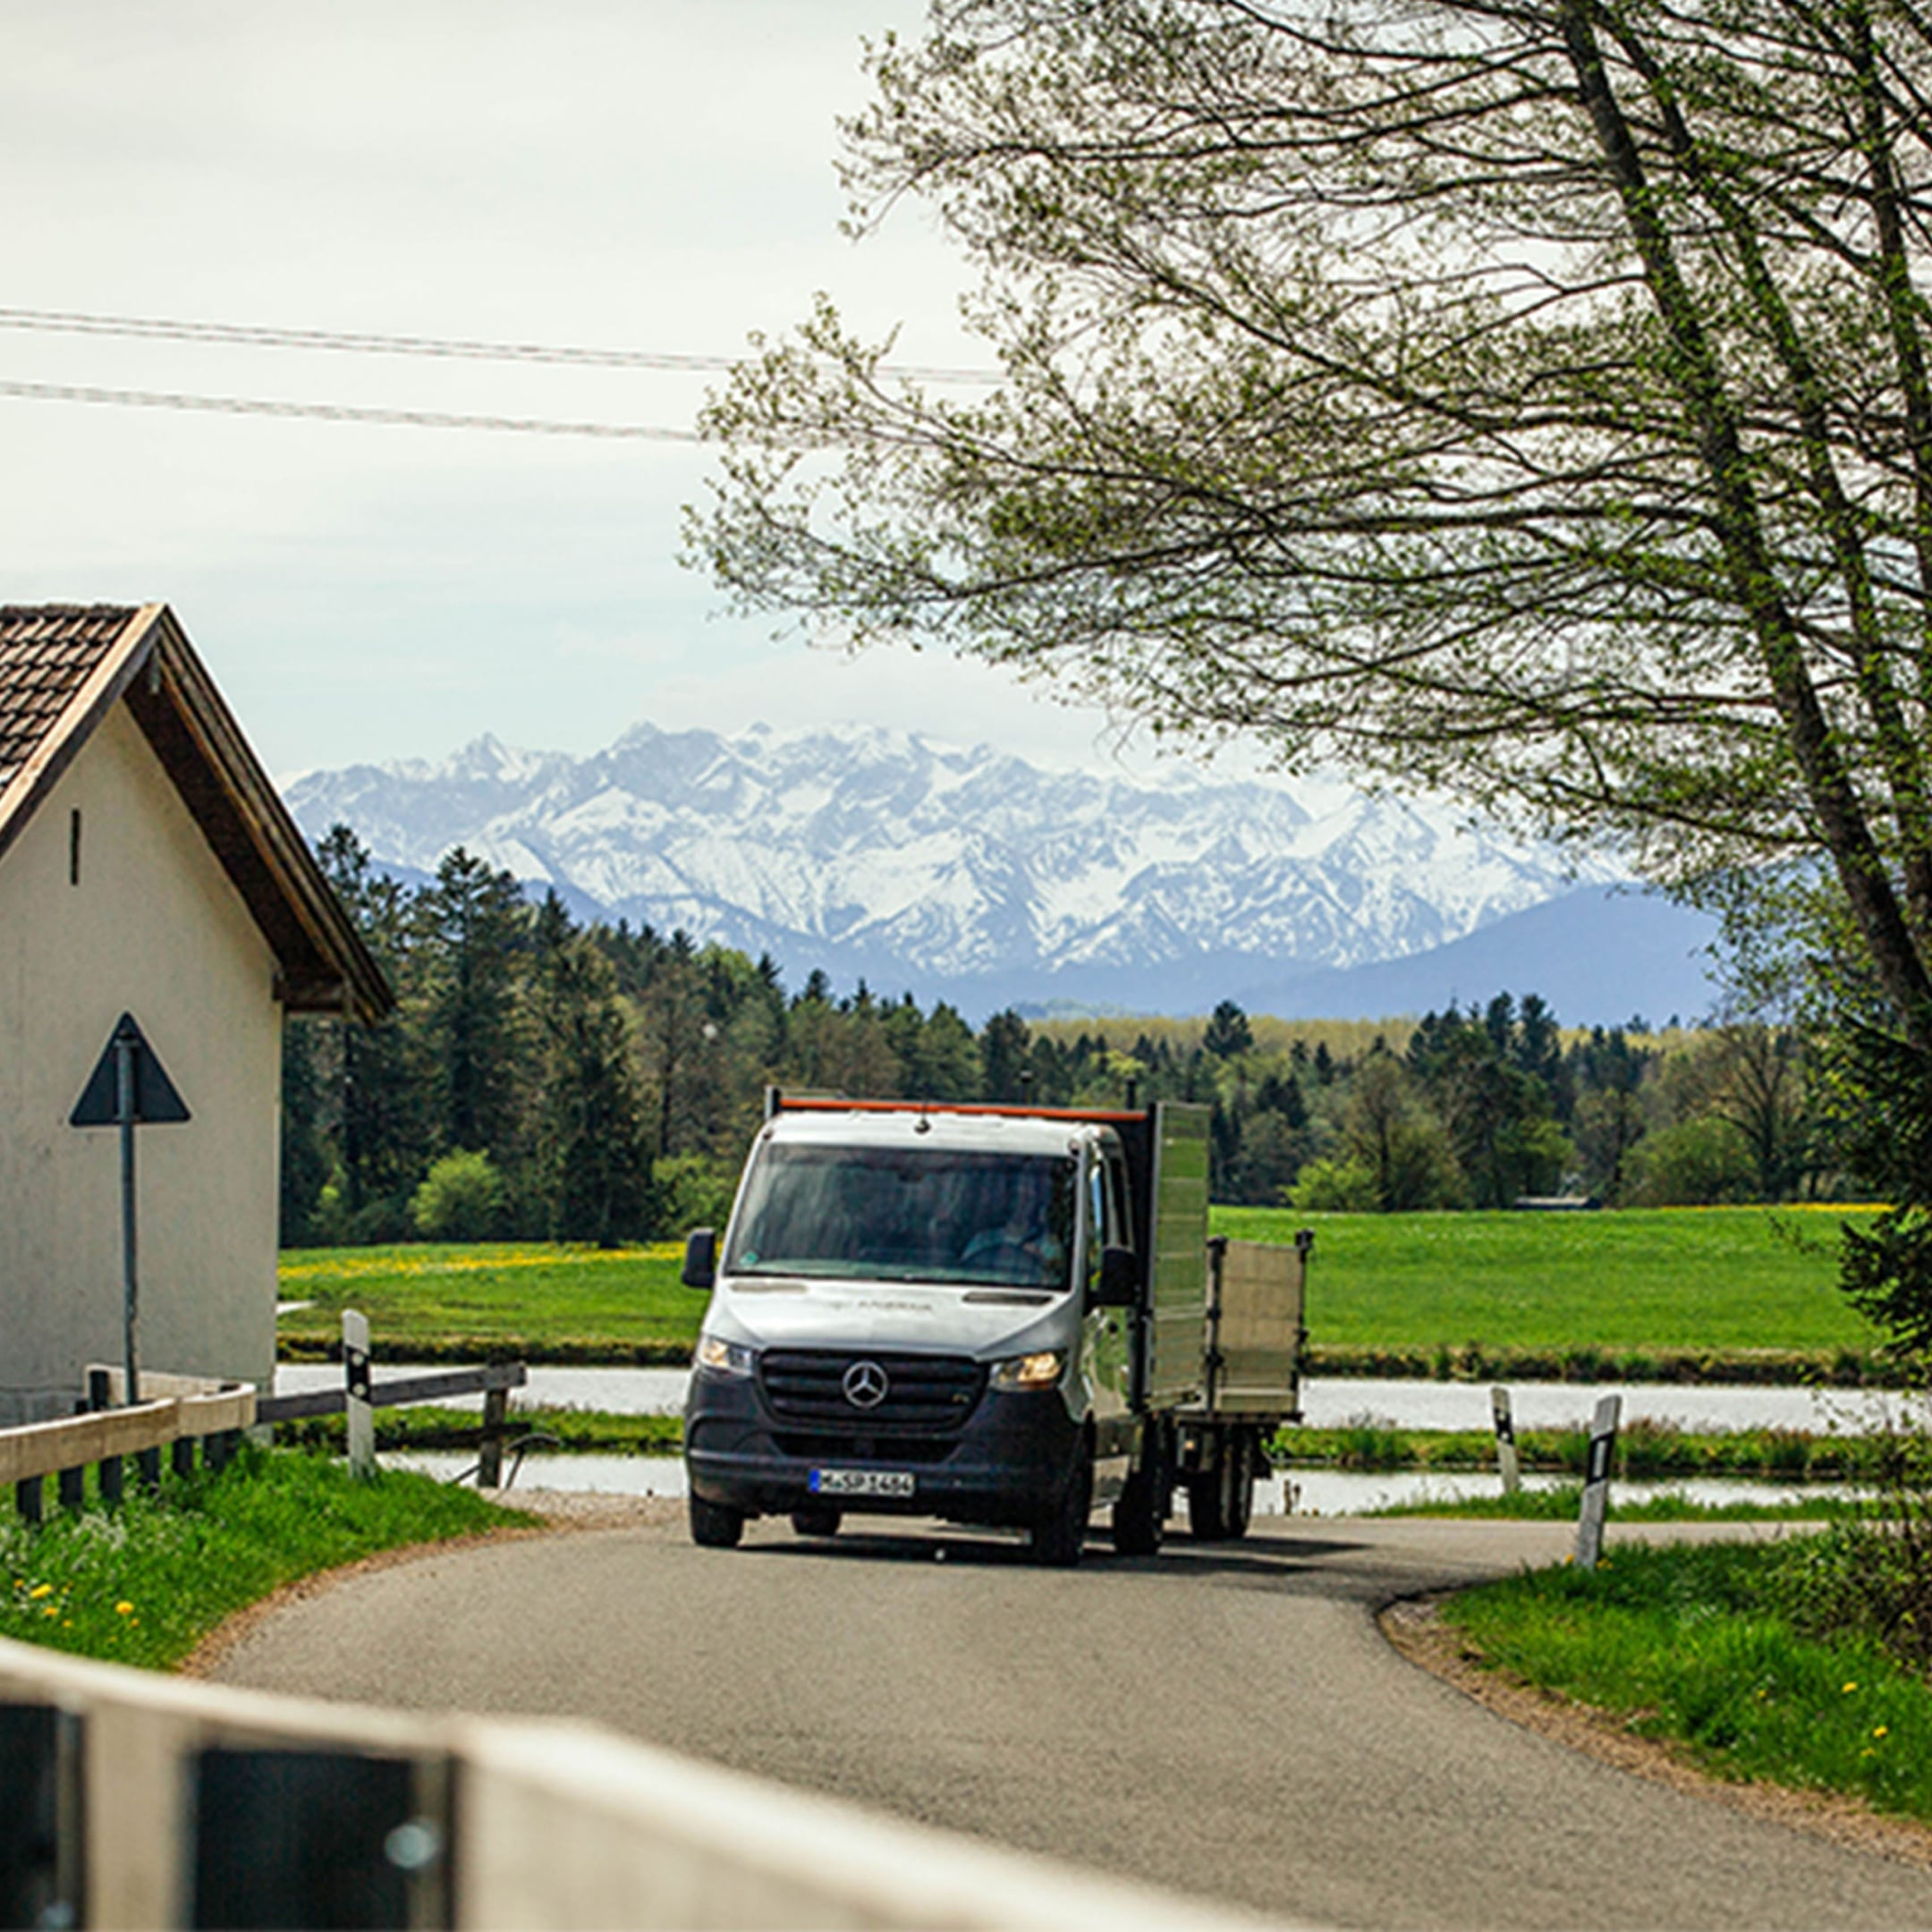 A Mercedes-Benz Sprinter drives along a winding road